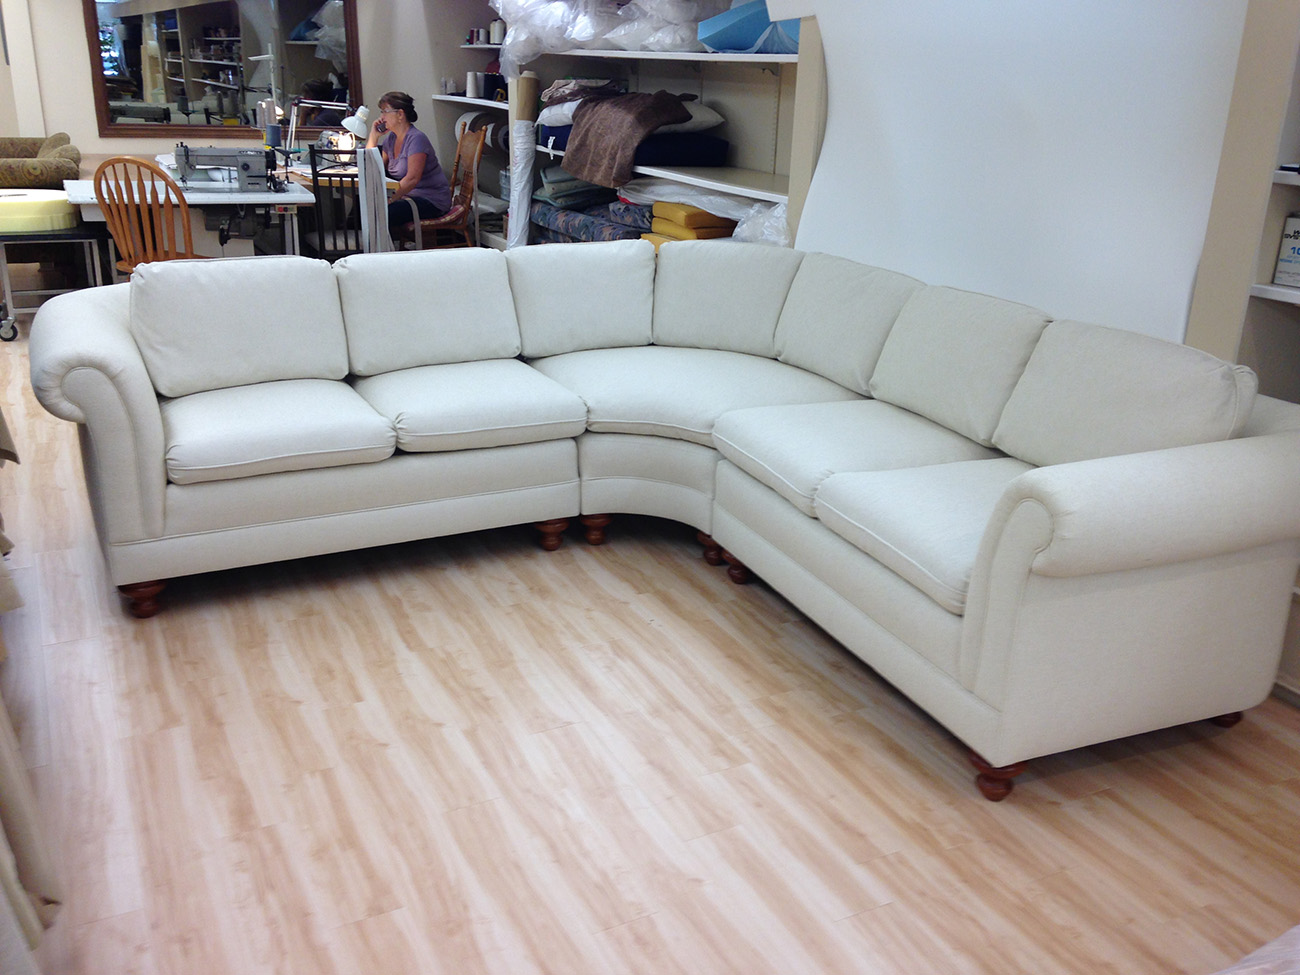 vinyl sofa repair 72 inch wide sleeper sectional re upholstery foamland and ted 39s